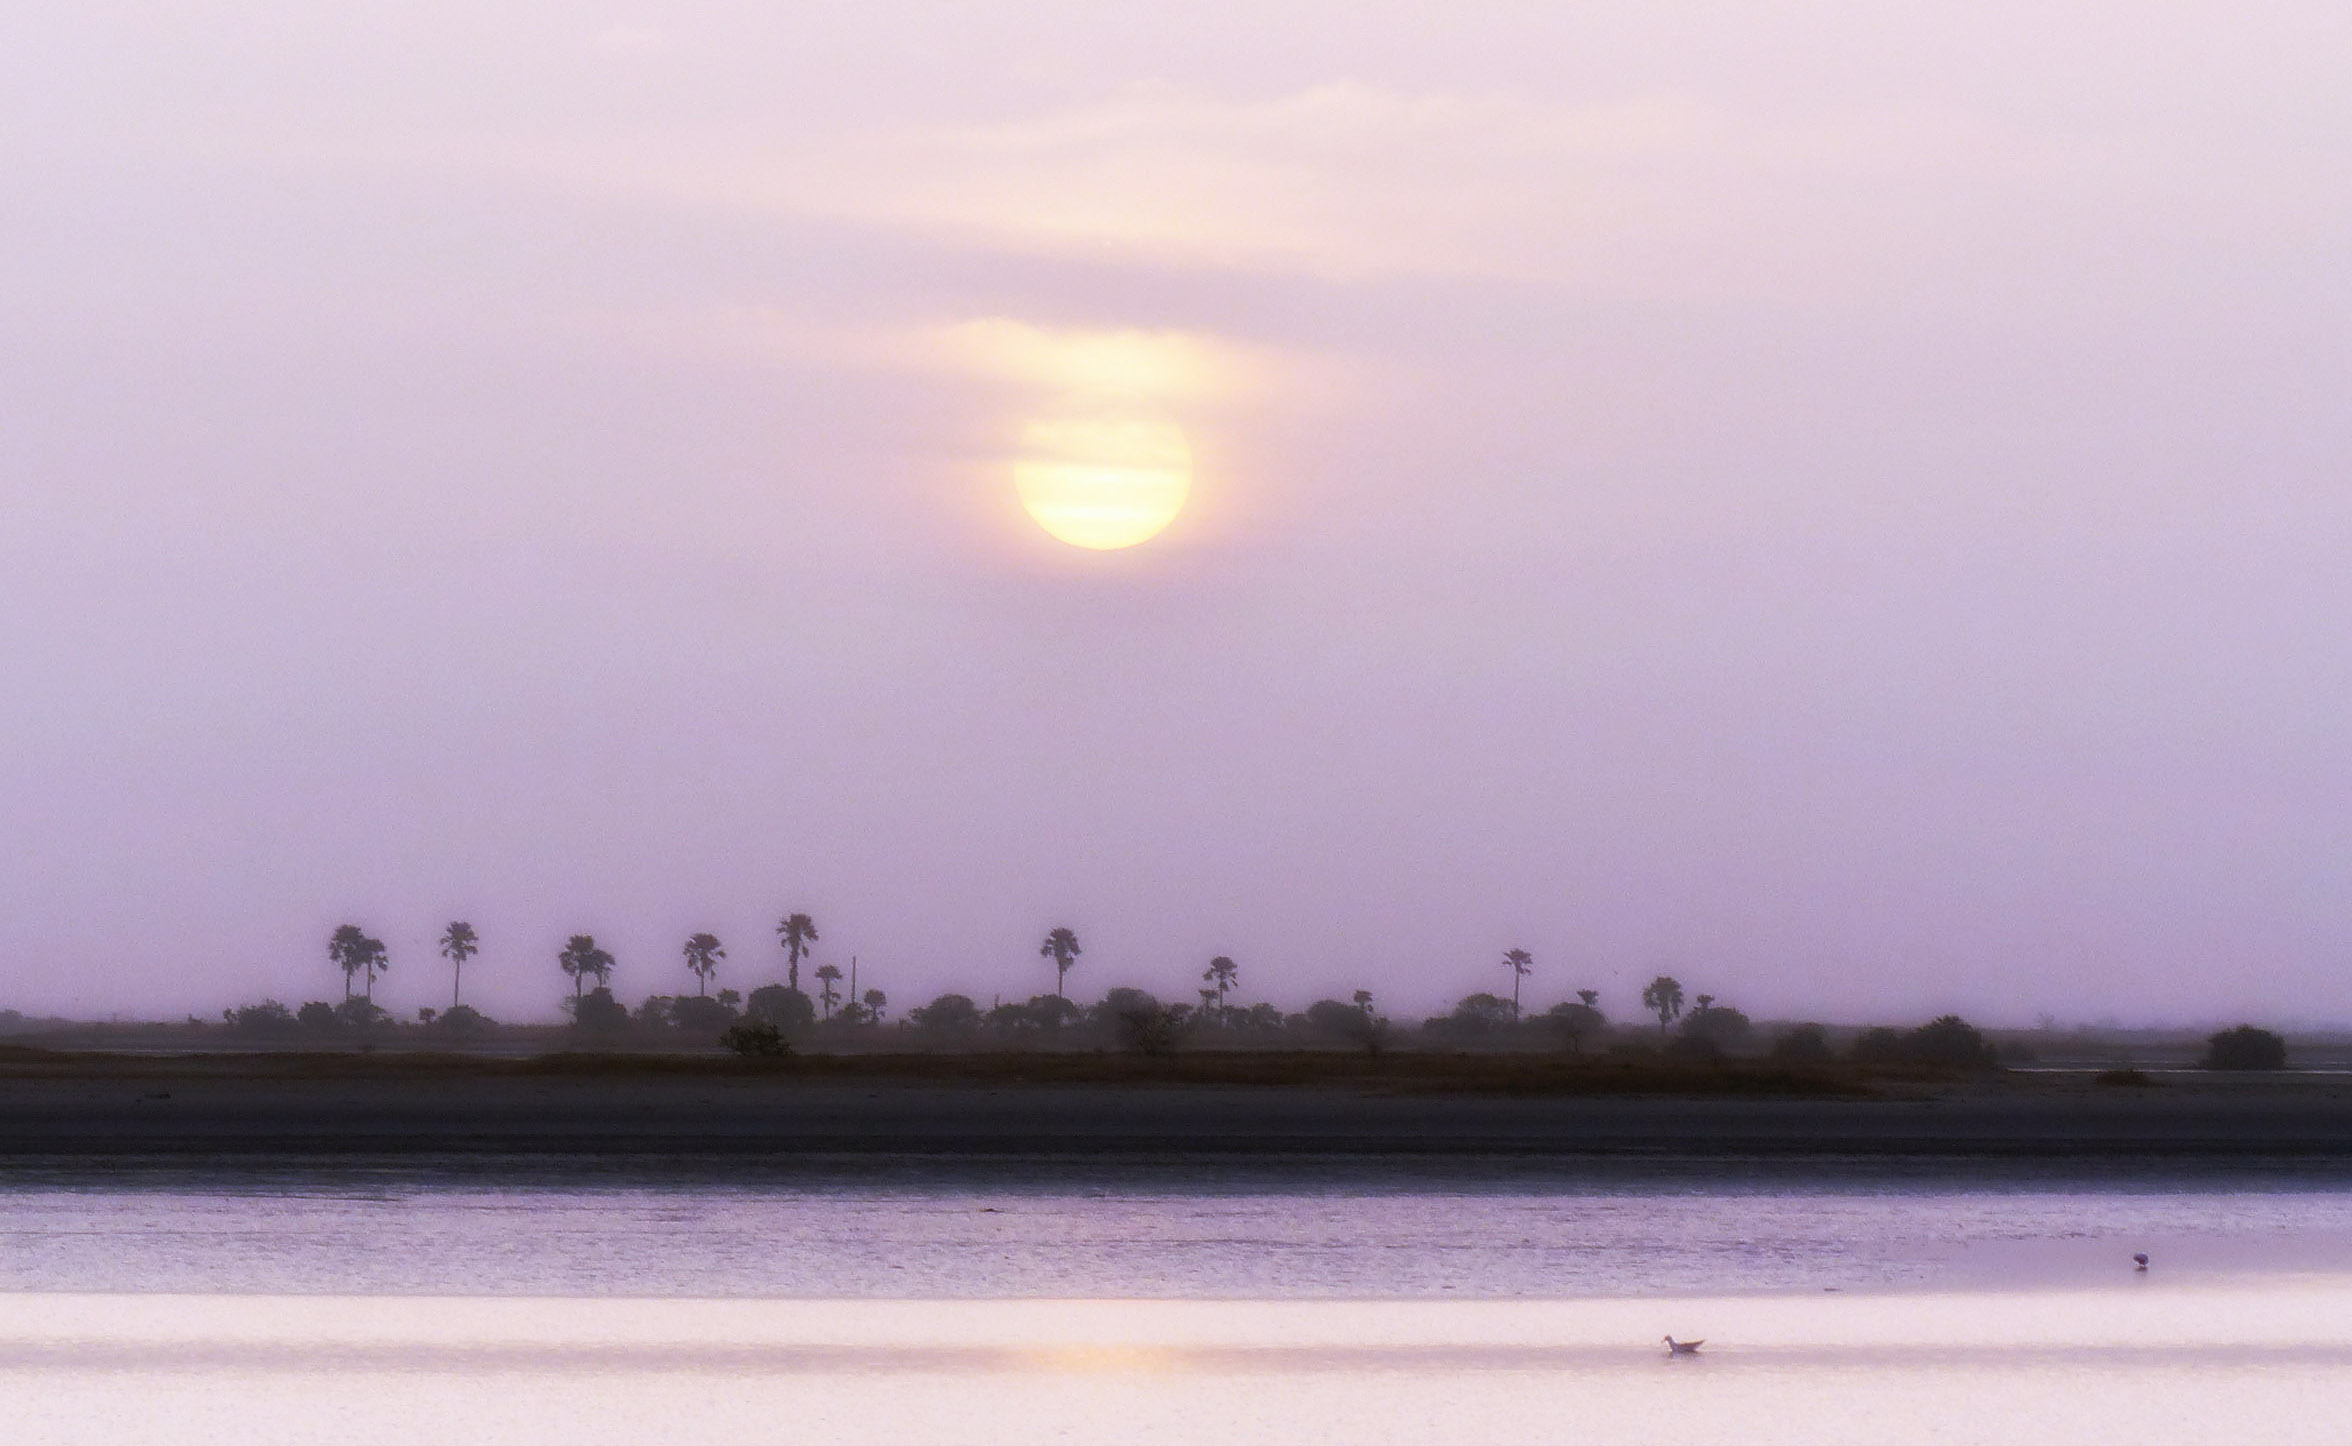 View of water and distant palm trees in pink light